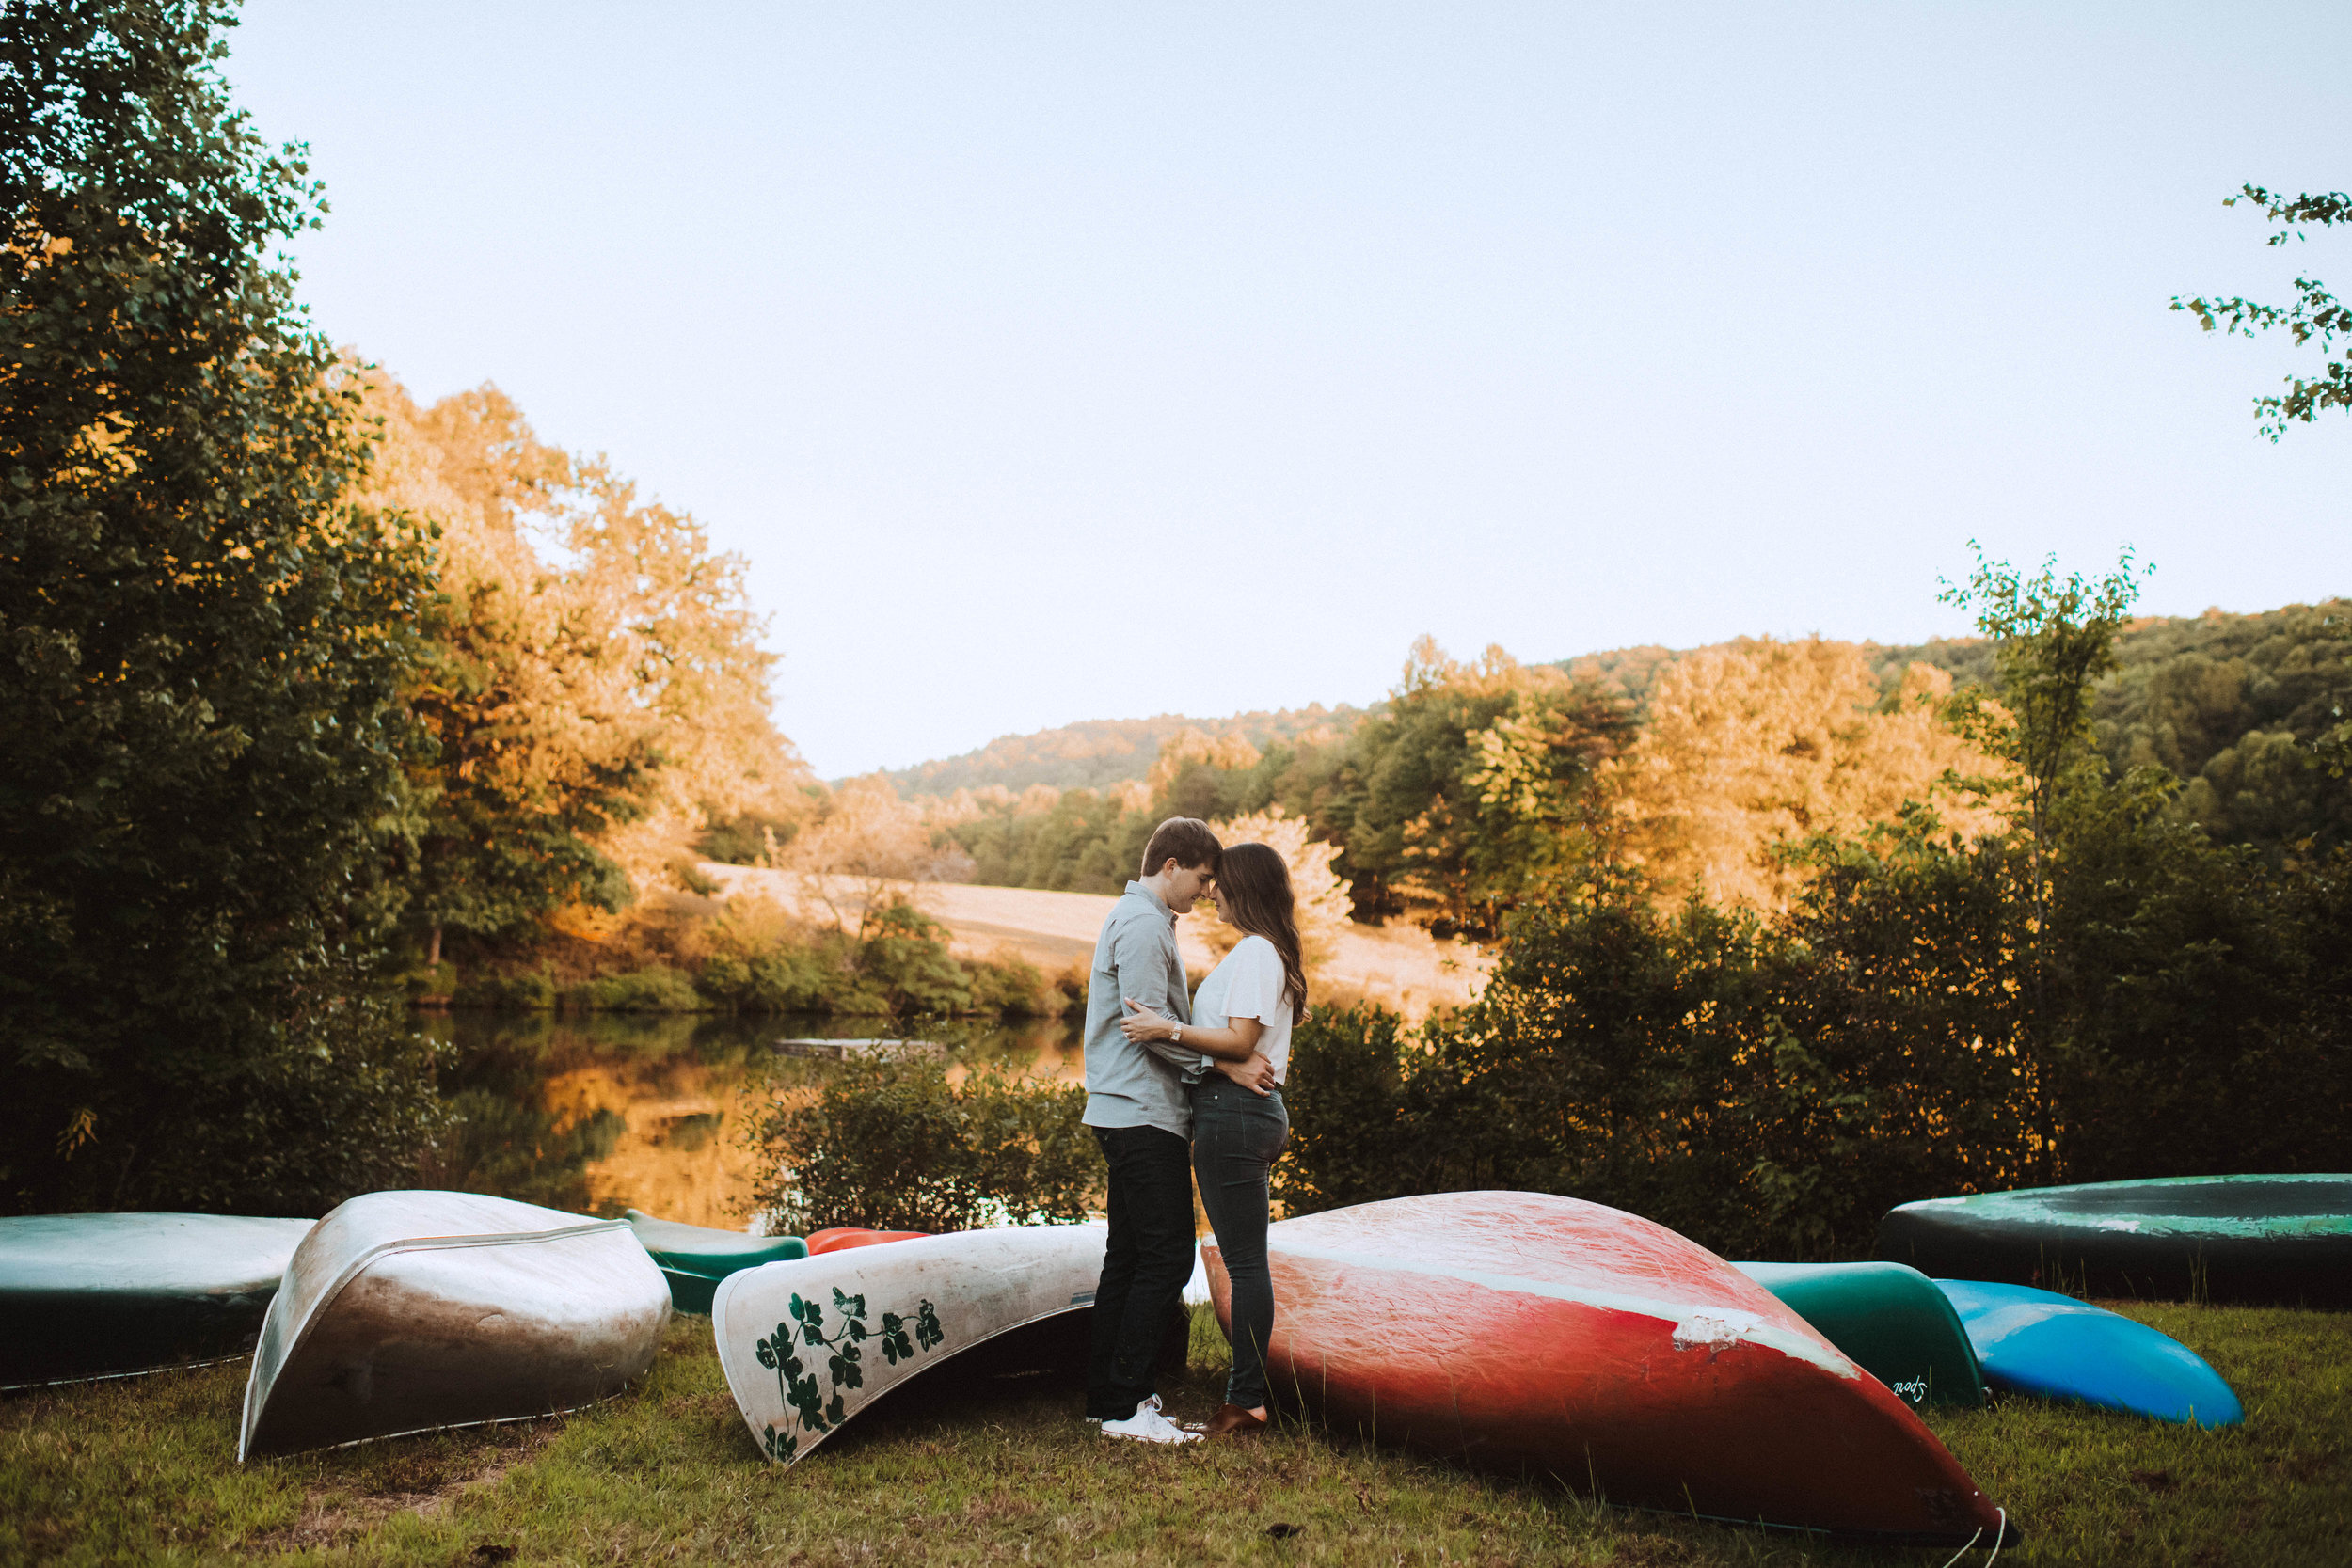 san francisco oakland bay area california sf atlanta georgia camp wes anderson moonrise kingdom inspired canoe engagement nontraditional wedding photographer -258.jpg